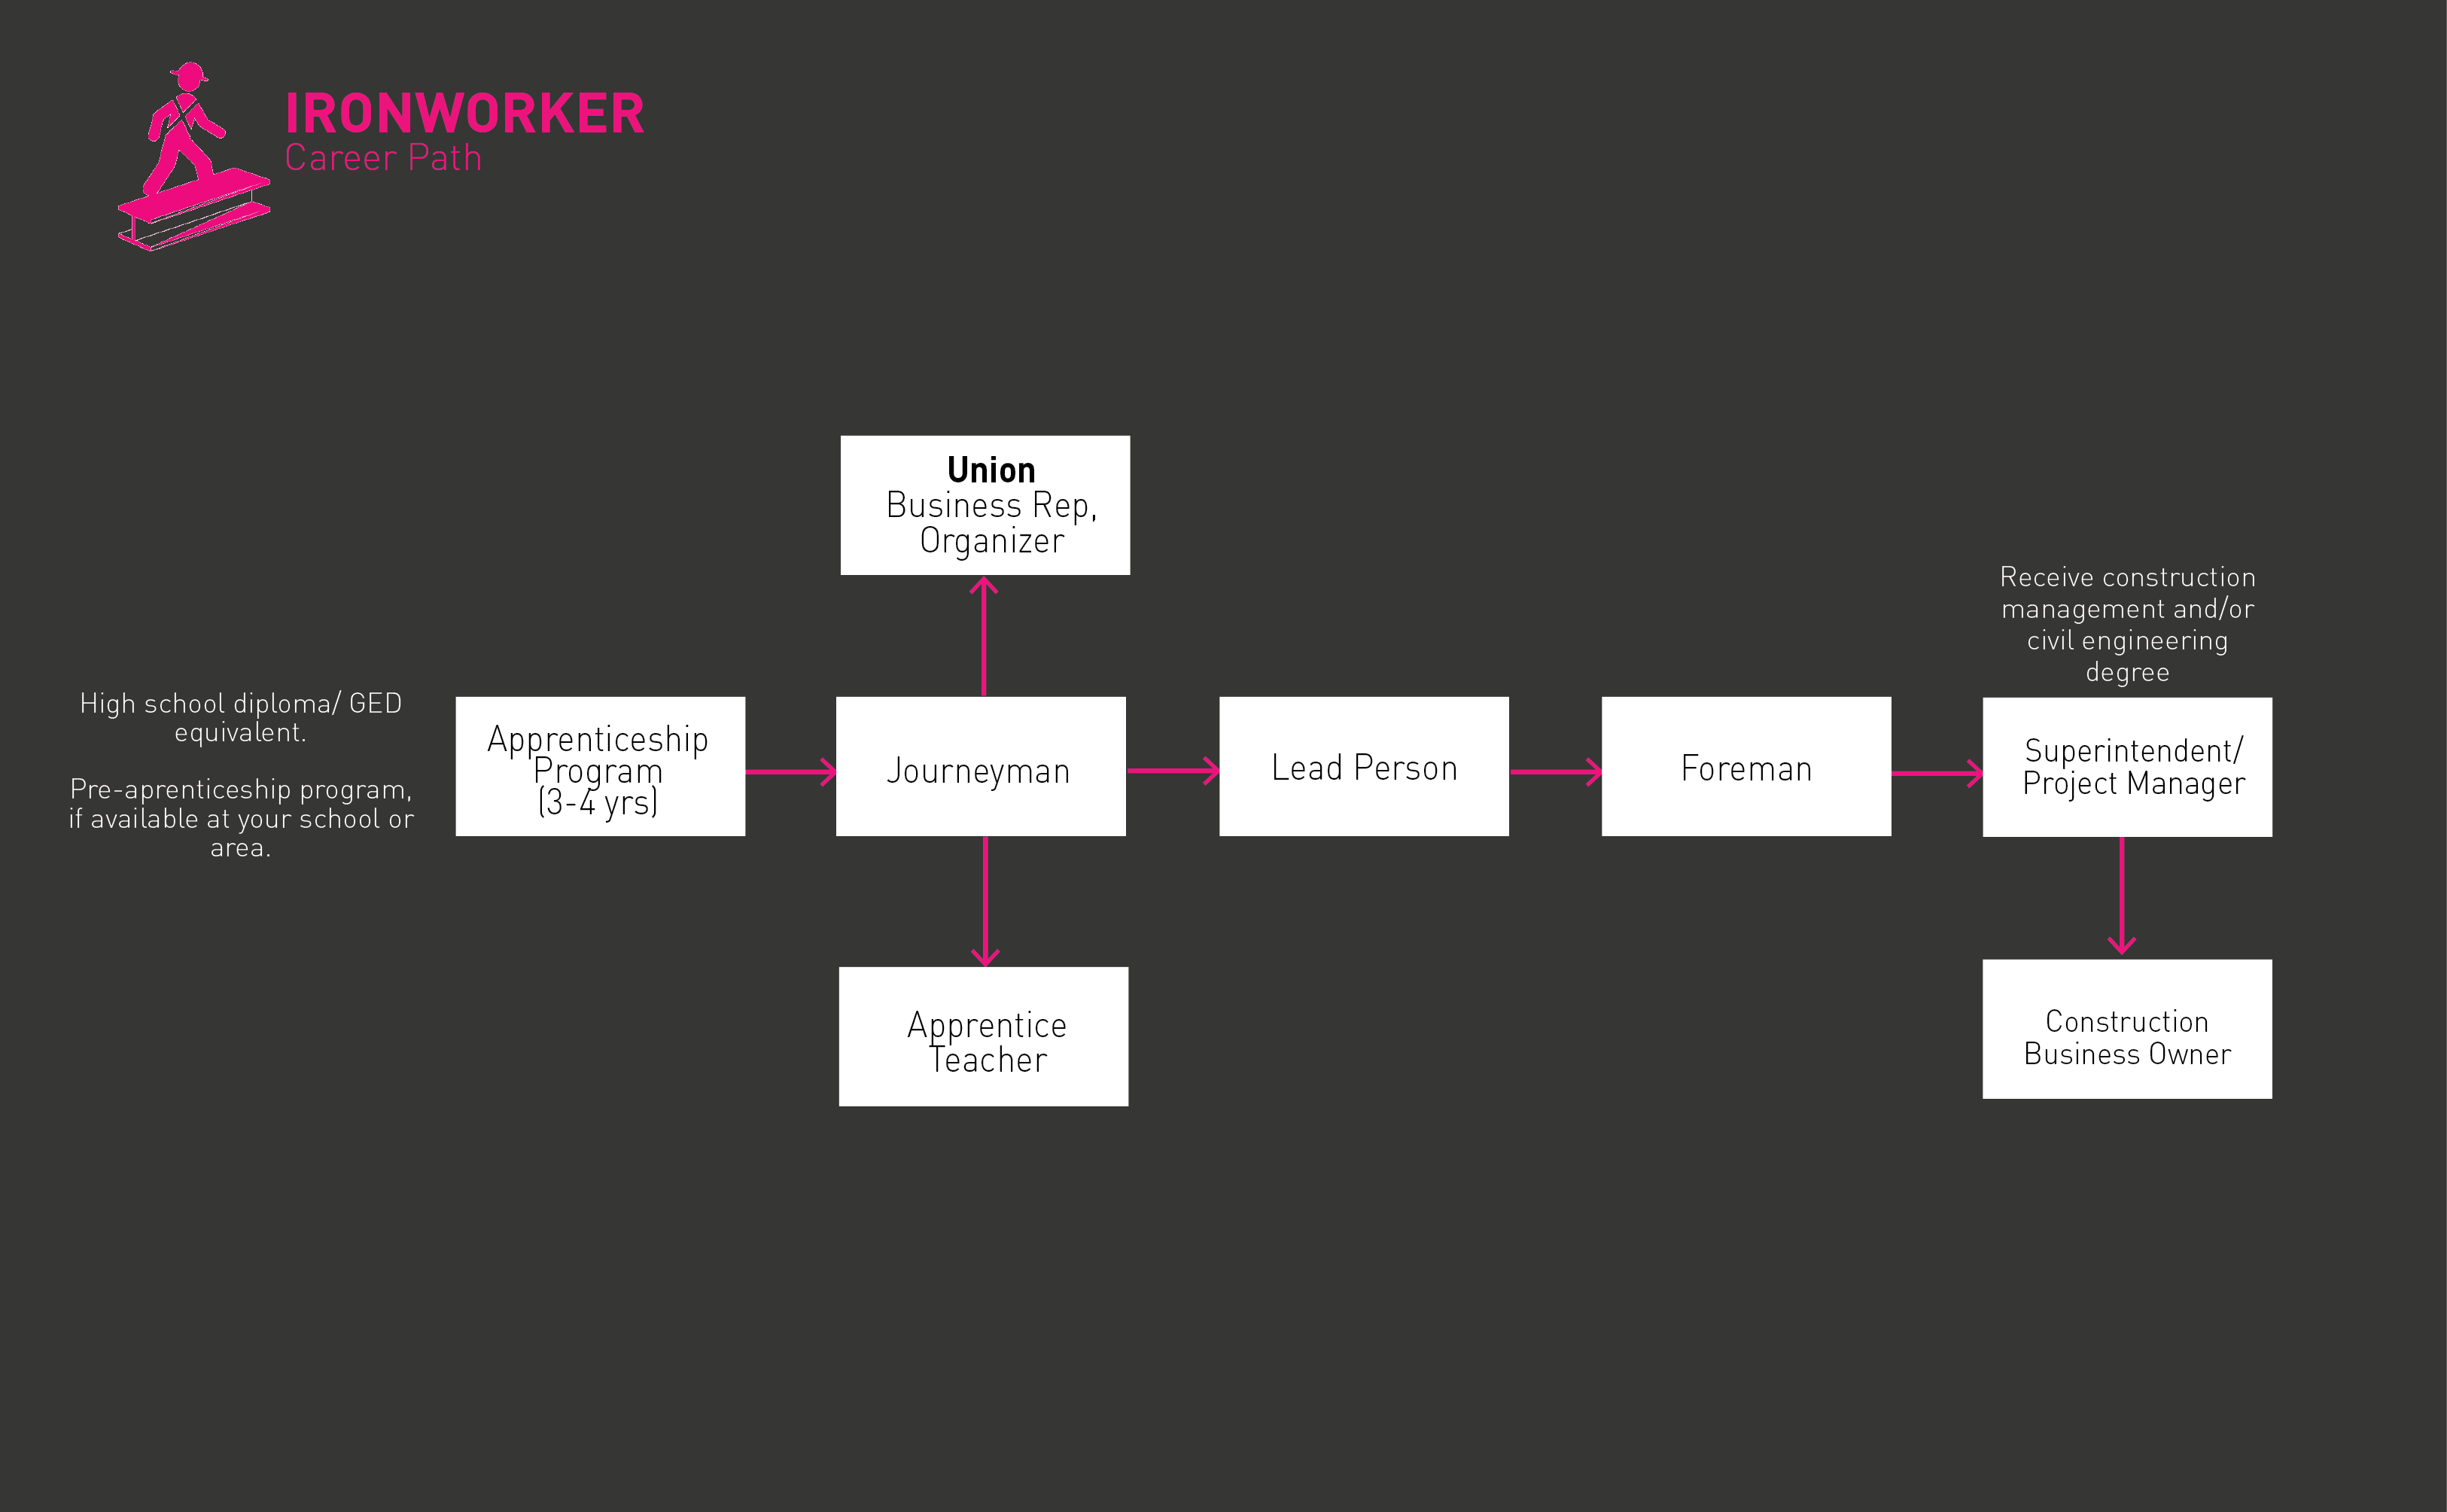 ironworker roadmap png